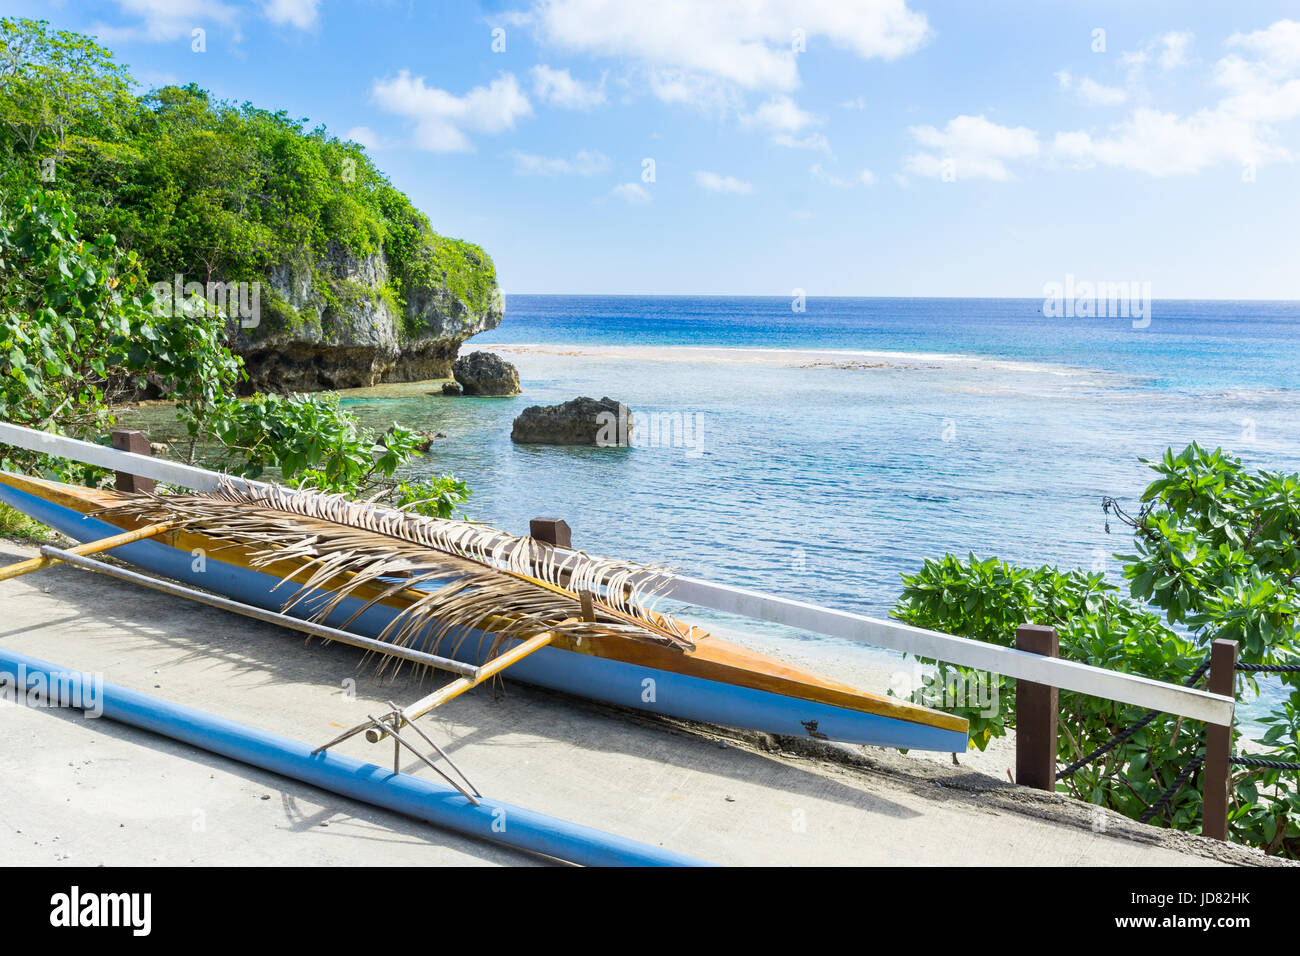 Out-rigger canoe under palm frond to shield some rainwater from boat on ledge overlooking scenic coastline and vast Pacific Island, Niue. Stock Photo